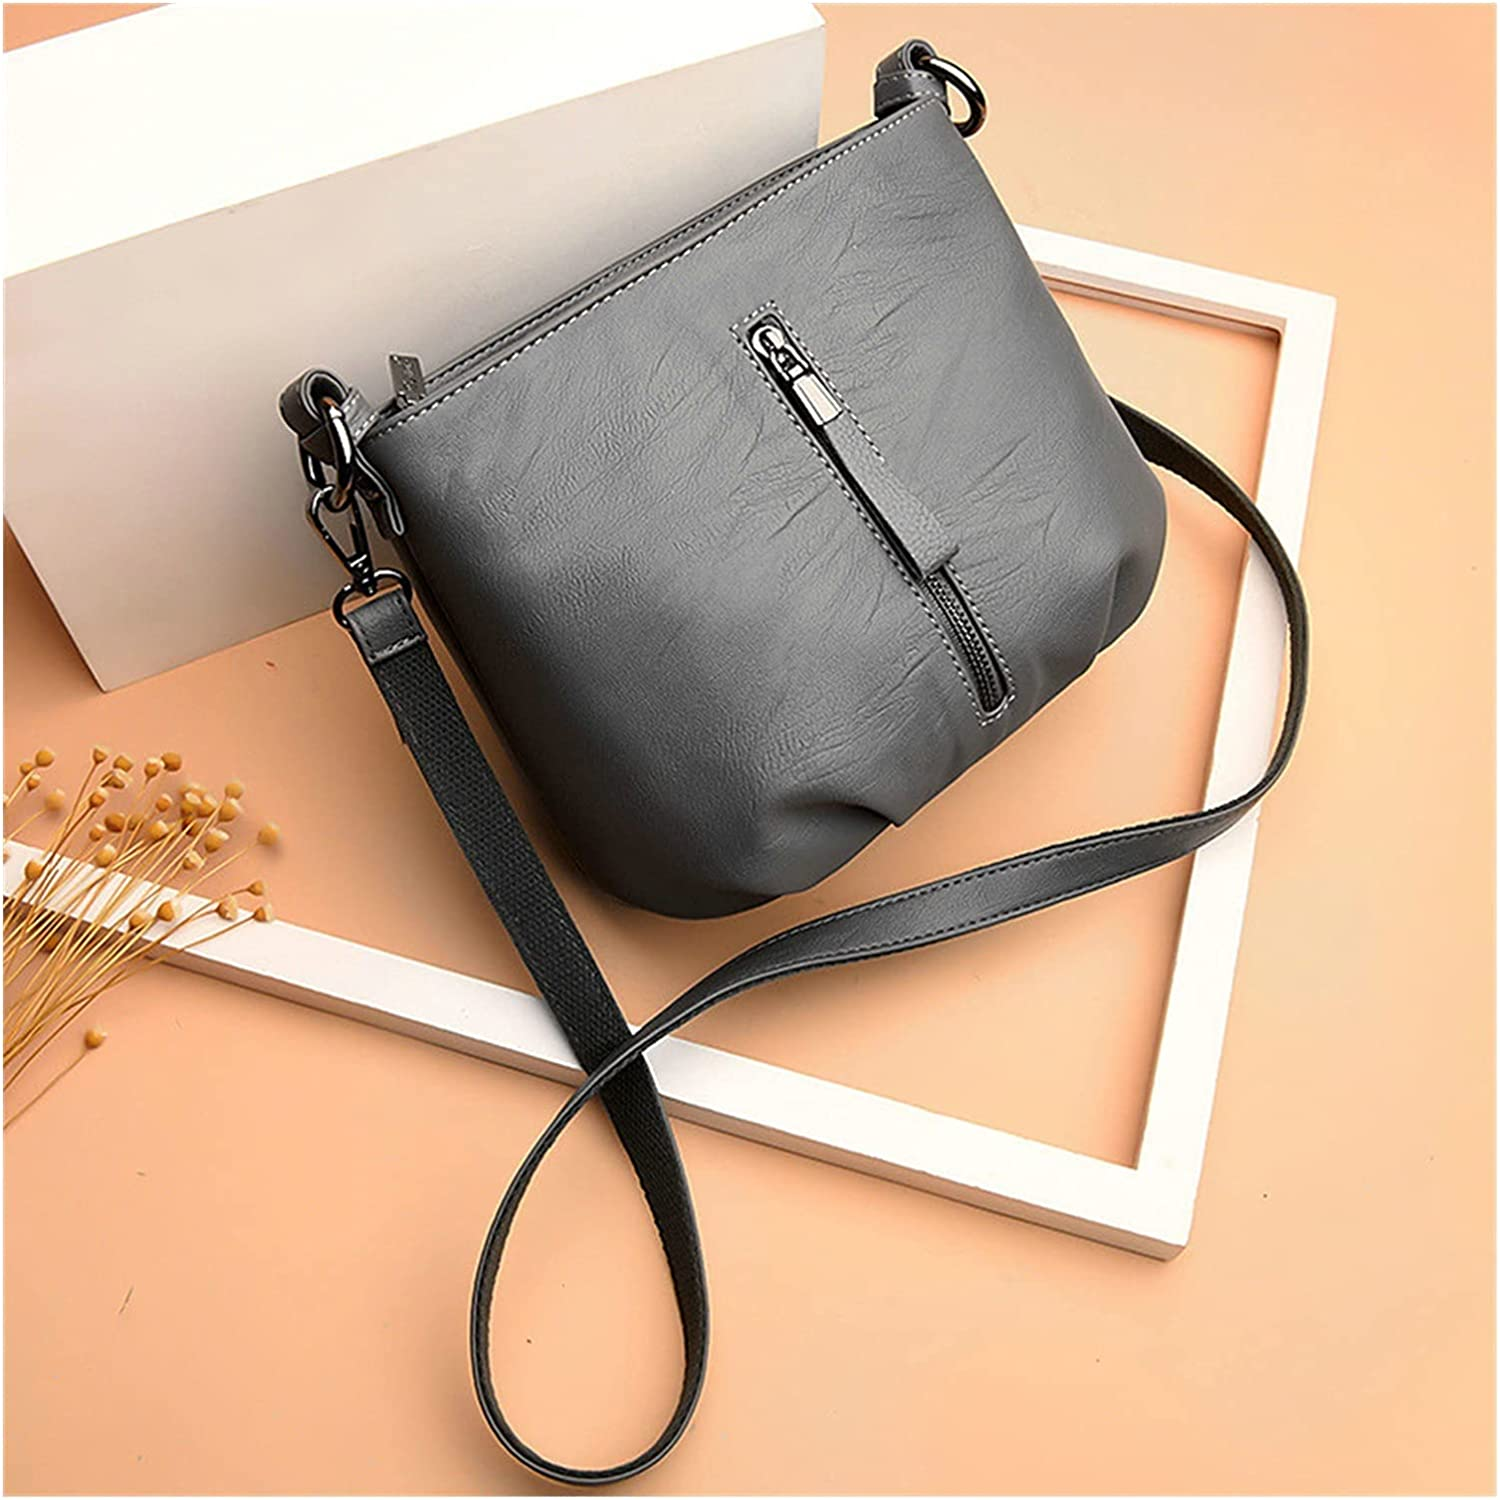 Shoulder Bags Female handbags Bag Ranking integrated 1st place Small Leather Tucson Mall Women's